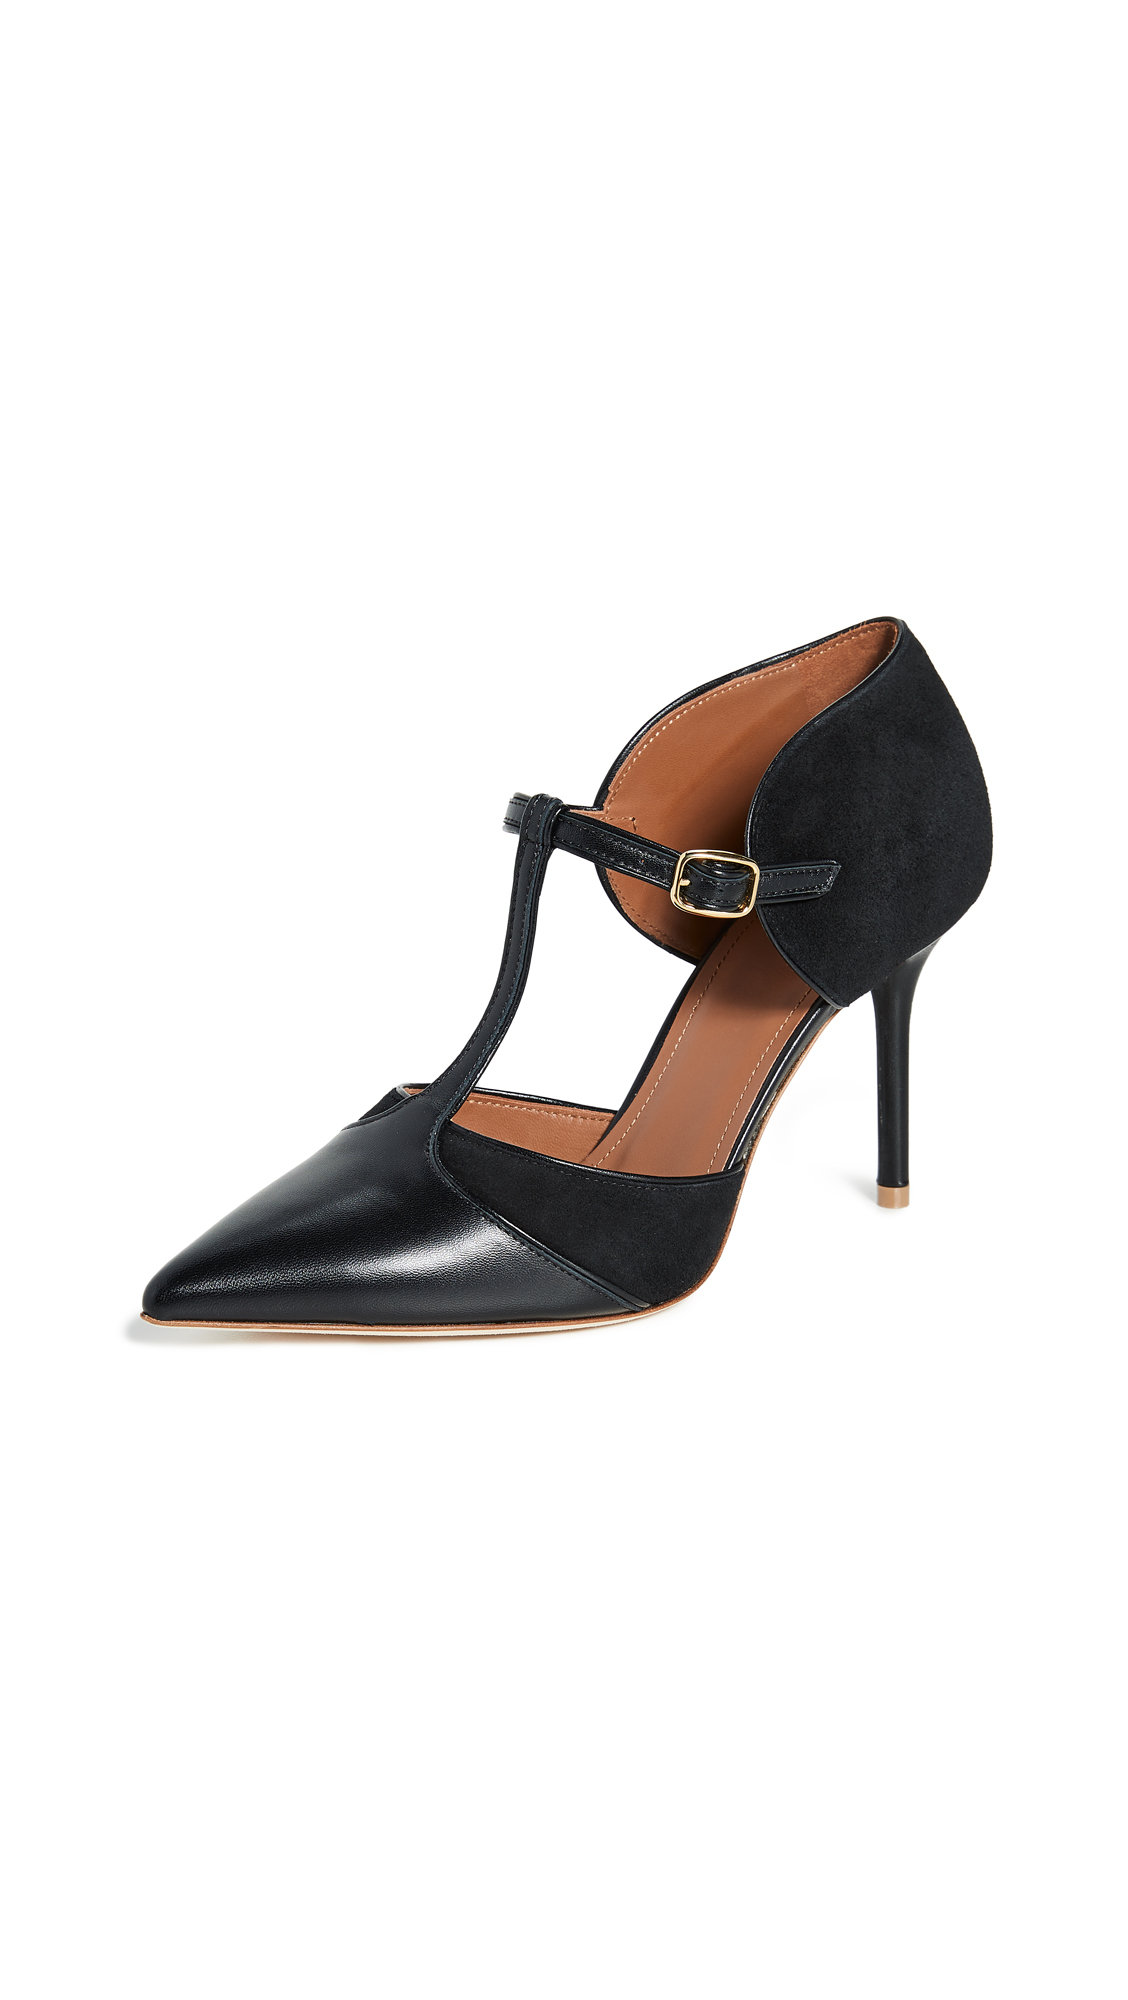 Buy Malone Souliers online - photo of Malone Souliers Sadie Ms 85 Pumps